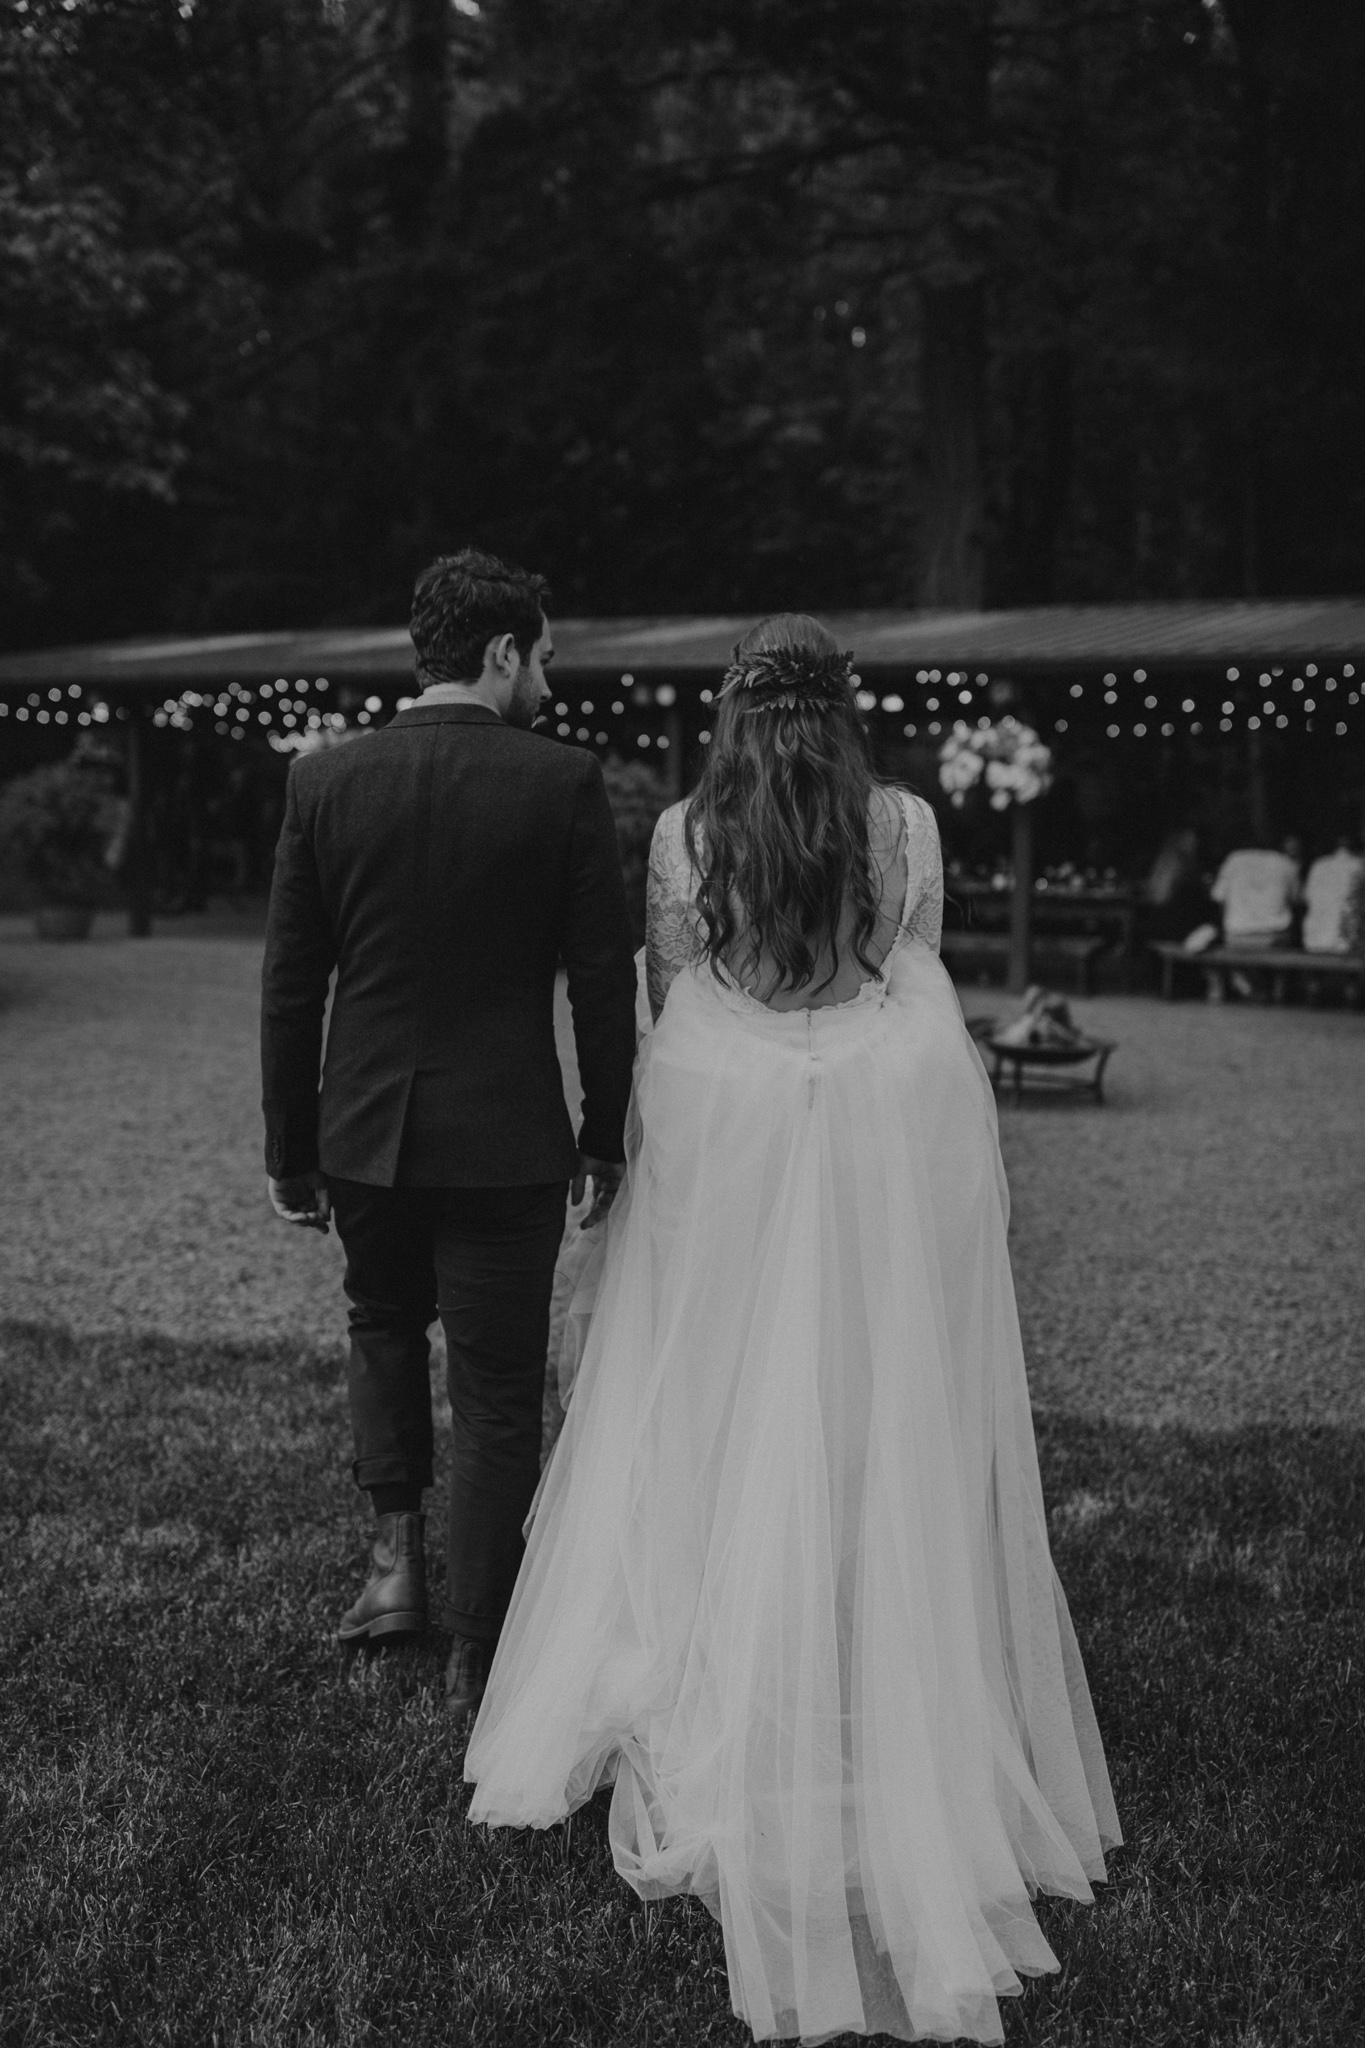 hornings_hideout_wedding_oliviastrohmphotography-166.jpg